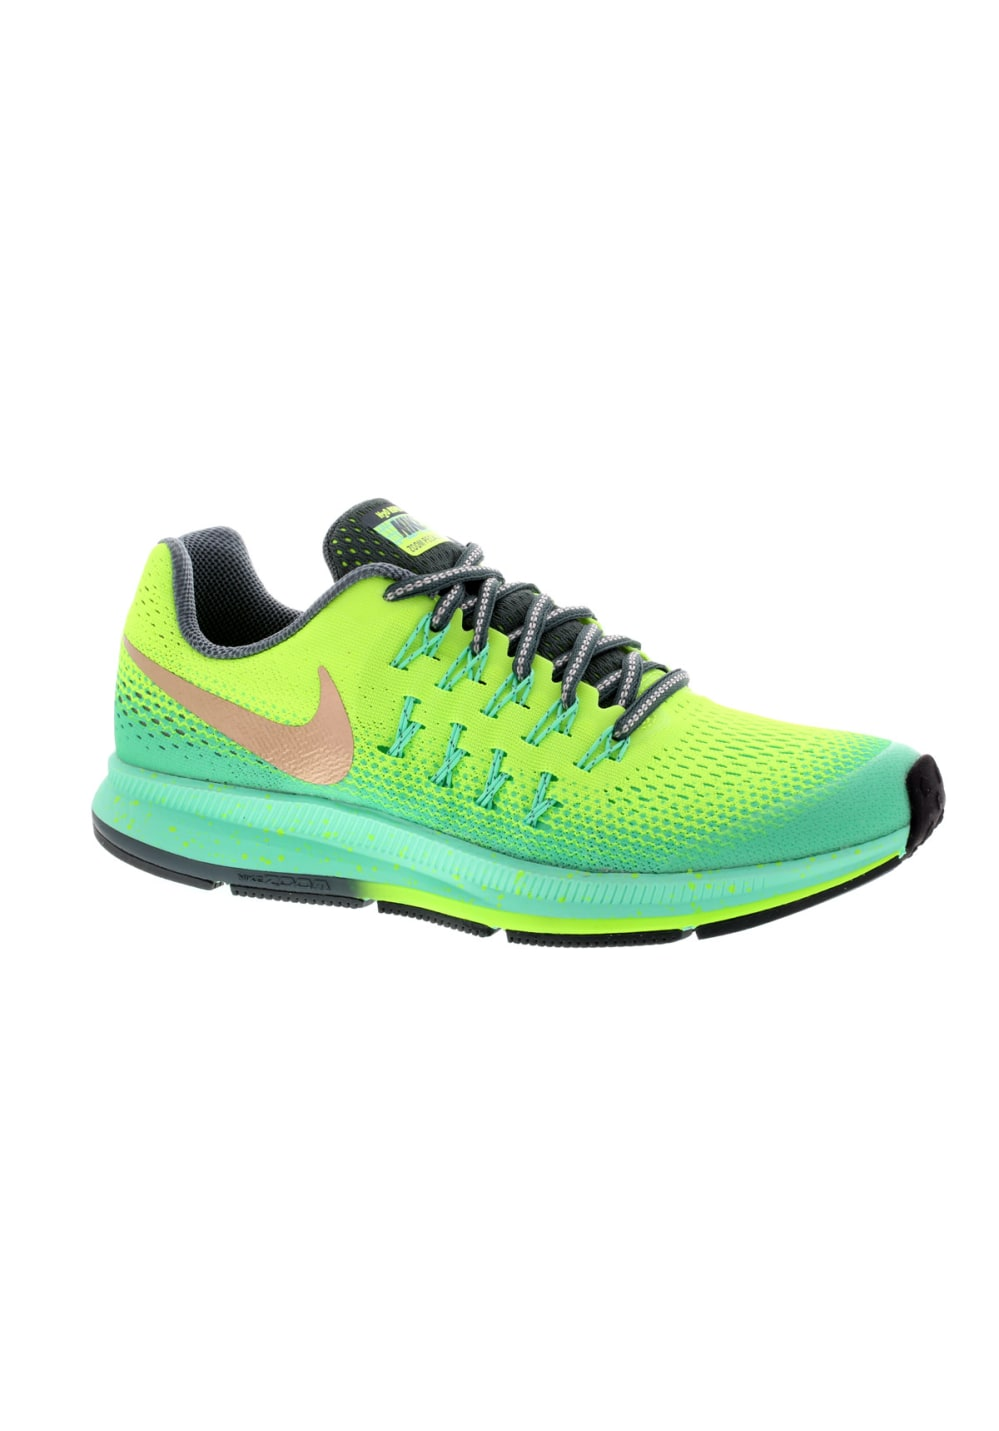 f25e83dd3a2a1 Nike Air Zoom Pegasus 33 Shield GS - Running shoes - Blue